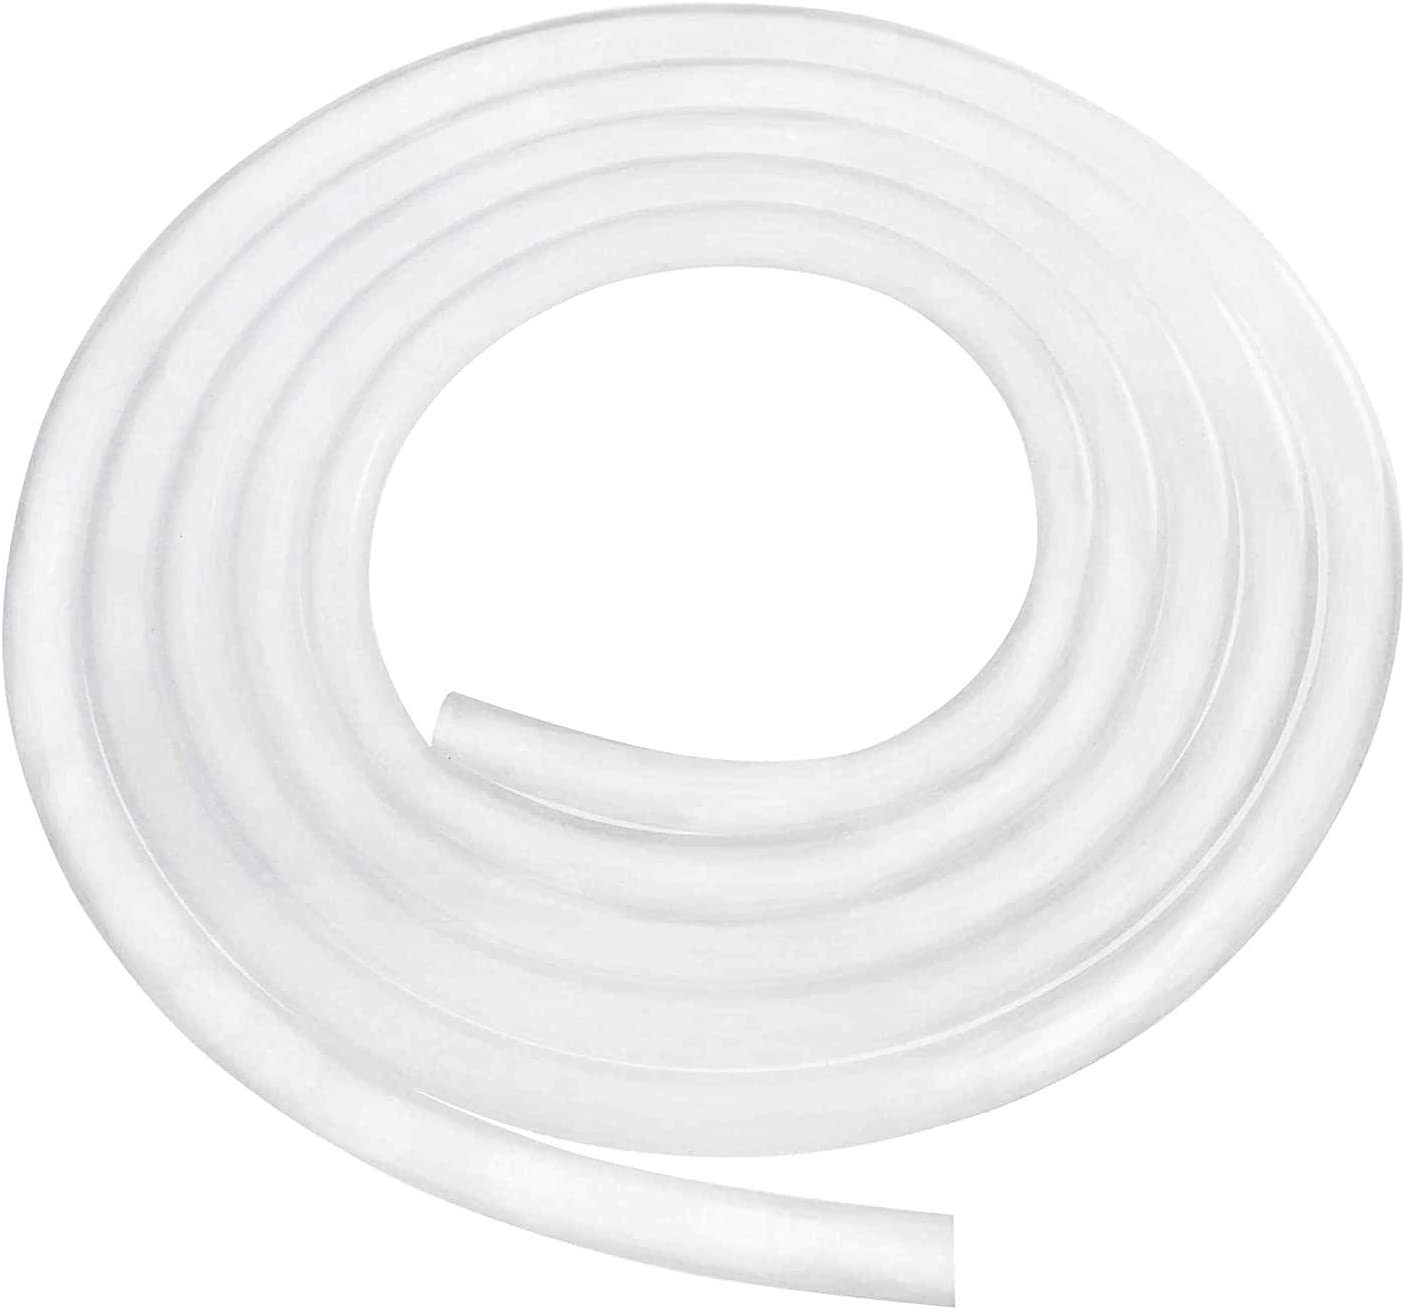 "Quickun Pure Silicone Tubing, 1/4"" ID x 3/8"" OD High Temp Food Grade Tube Pure Silicone Hose Tube for Home Brewing, Beer Line, Kegerator, Wine Making, Aquaponics, Air Hose by Proper Pour (9.84 Ft)"